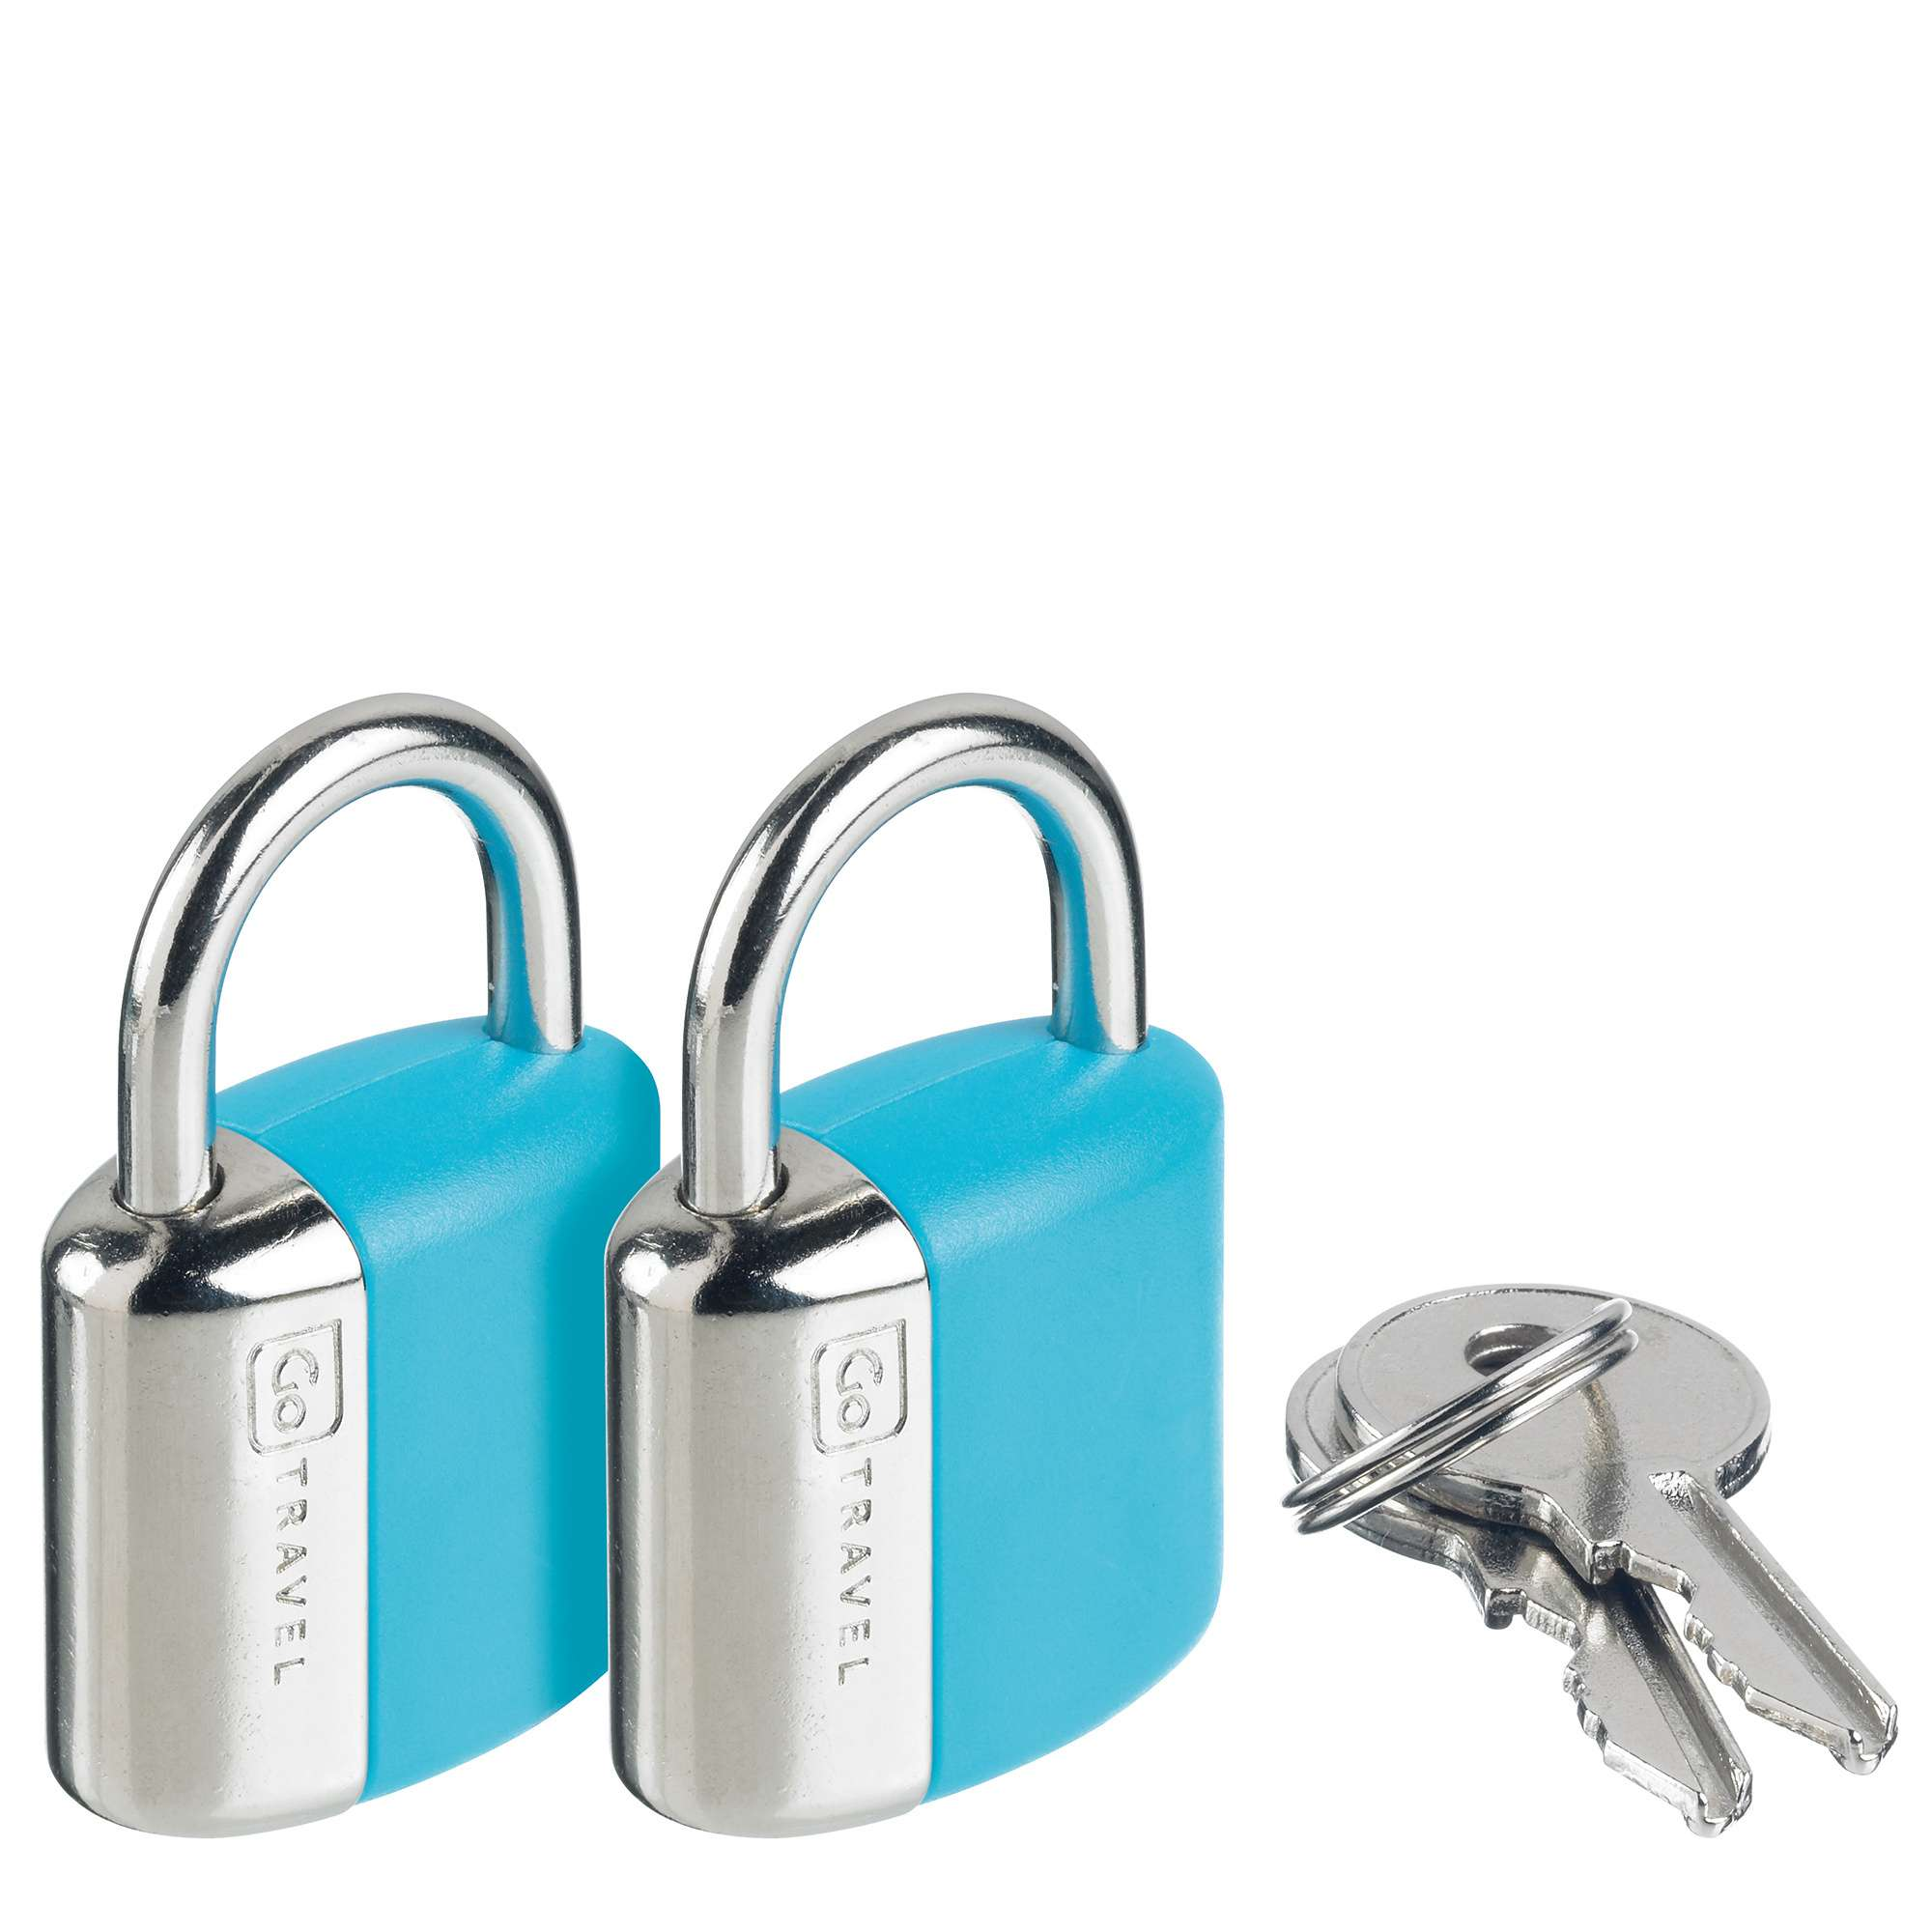 DESIGN GO Glo Key Locks